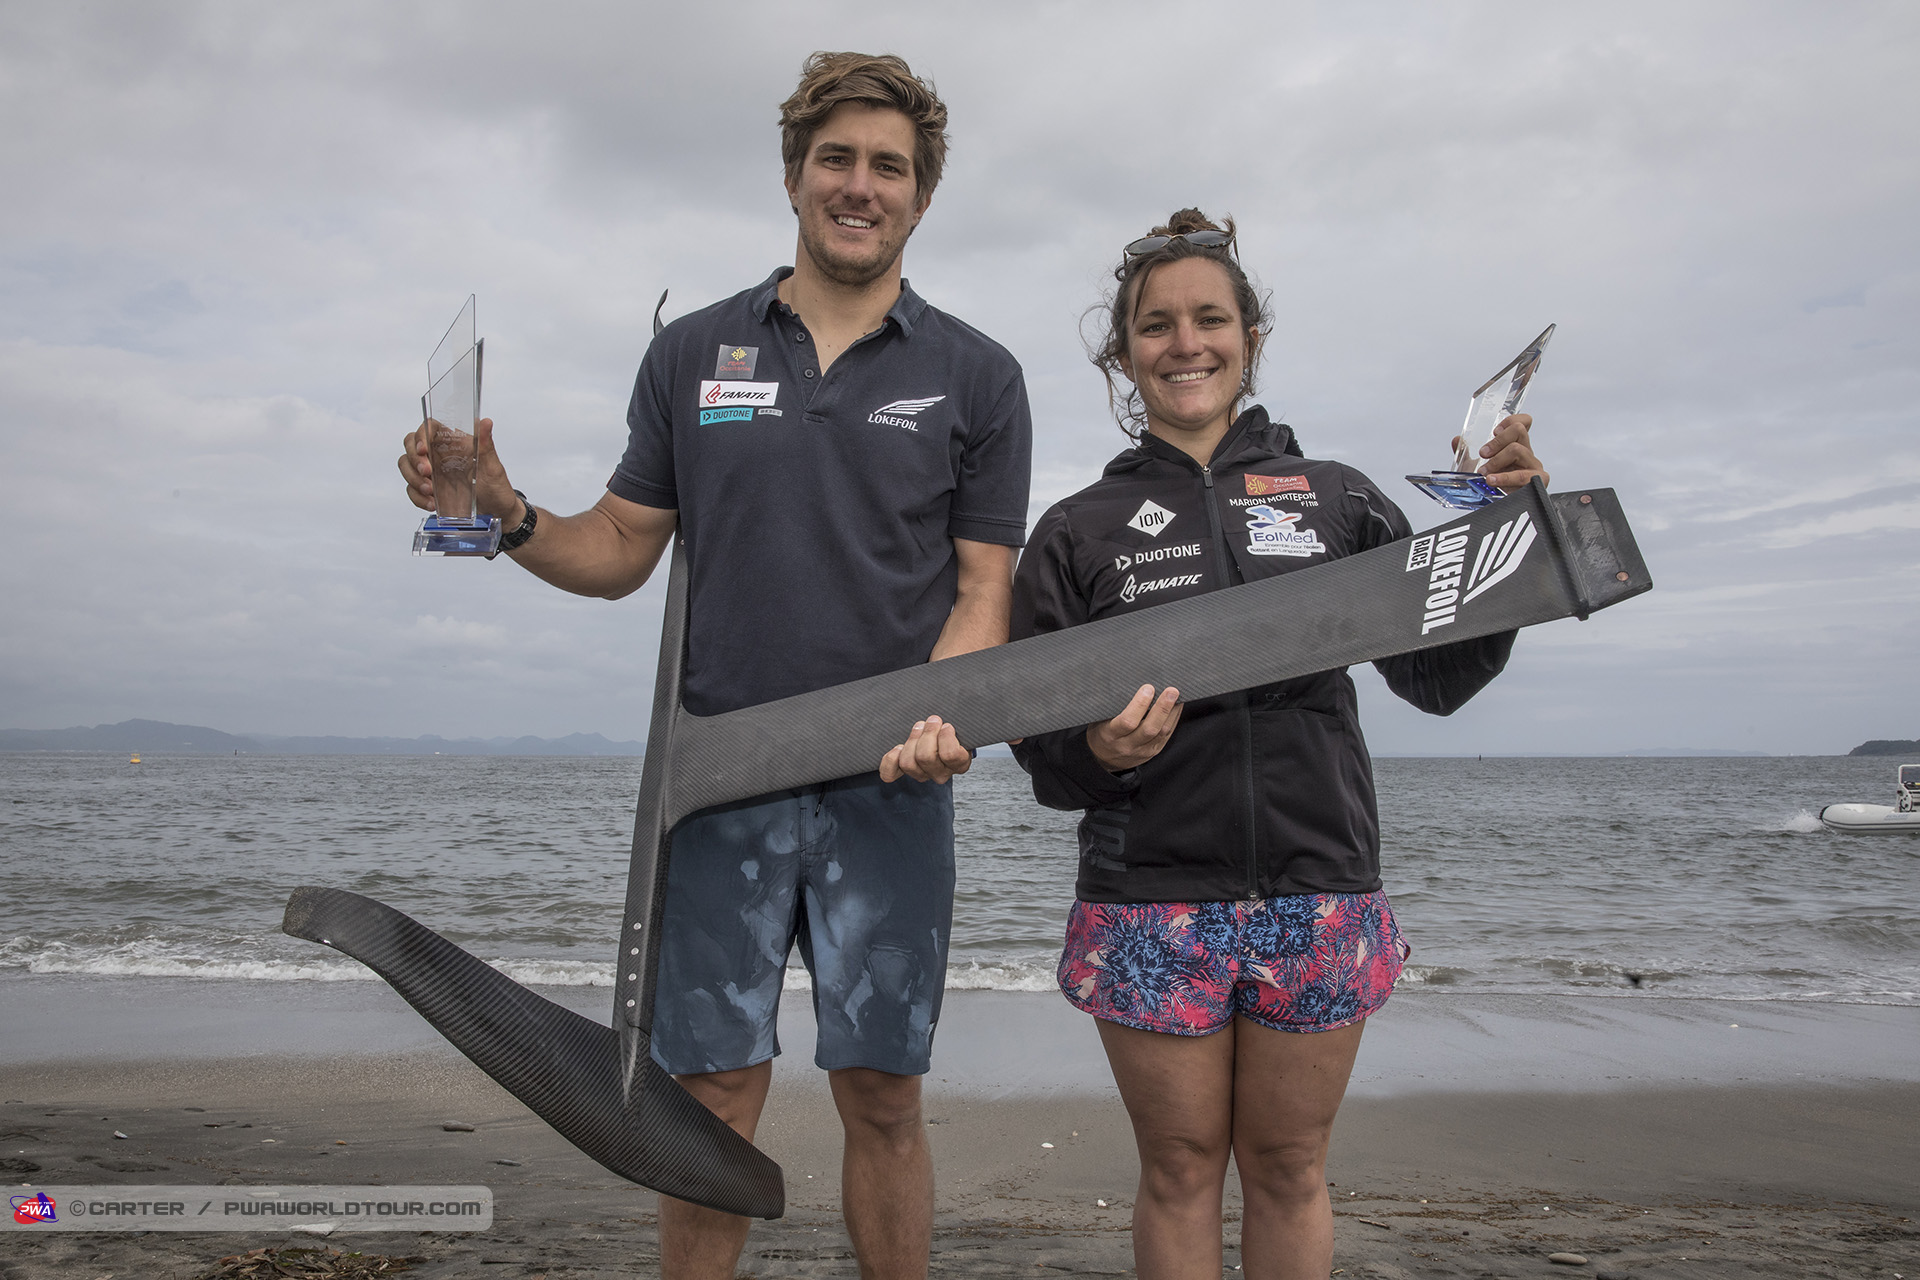 More success for Pierre and Marion Mortefon